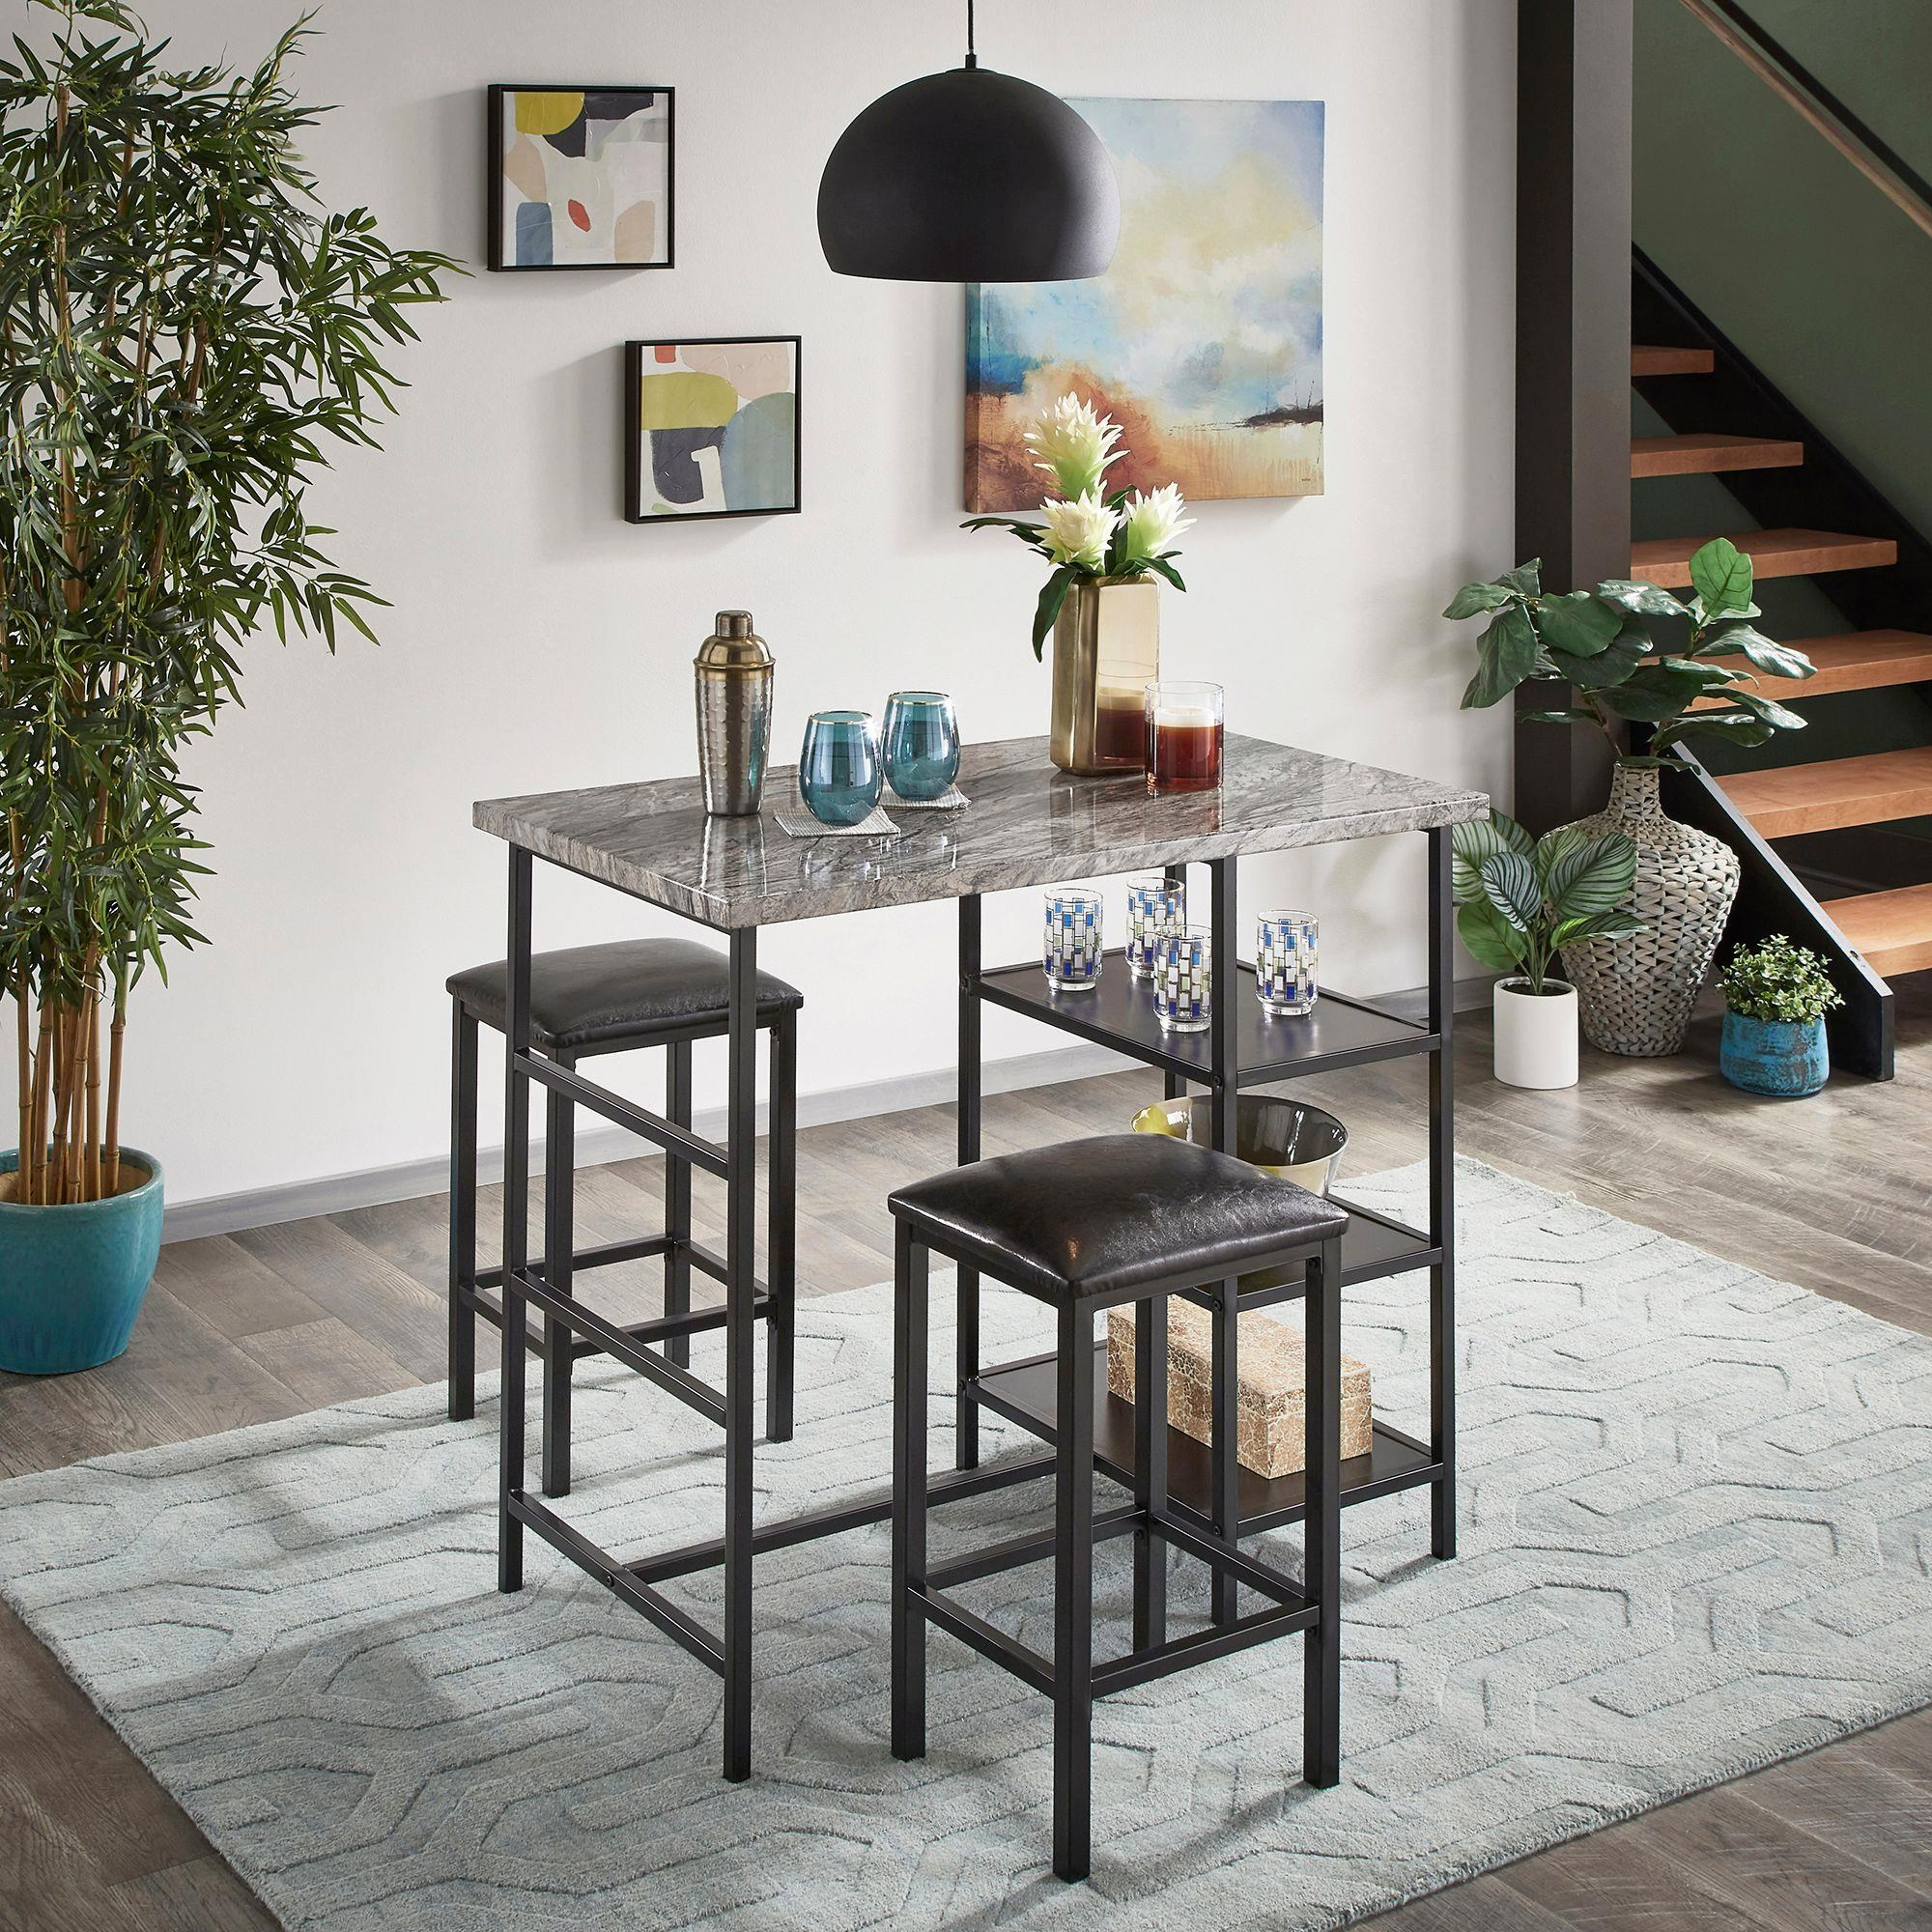 Reko 3 Piece Counter Height Dining Set by Homelegance at Darvin Furniture